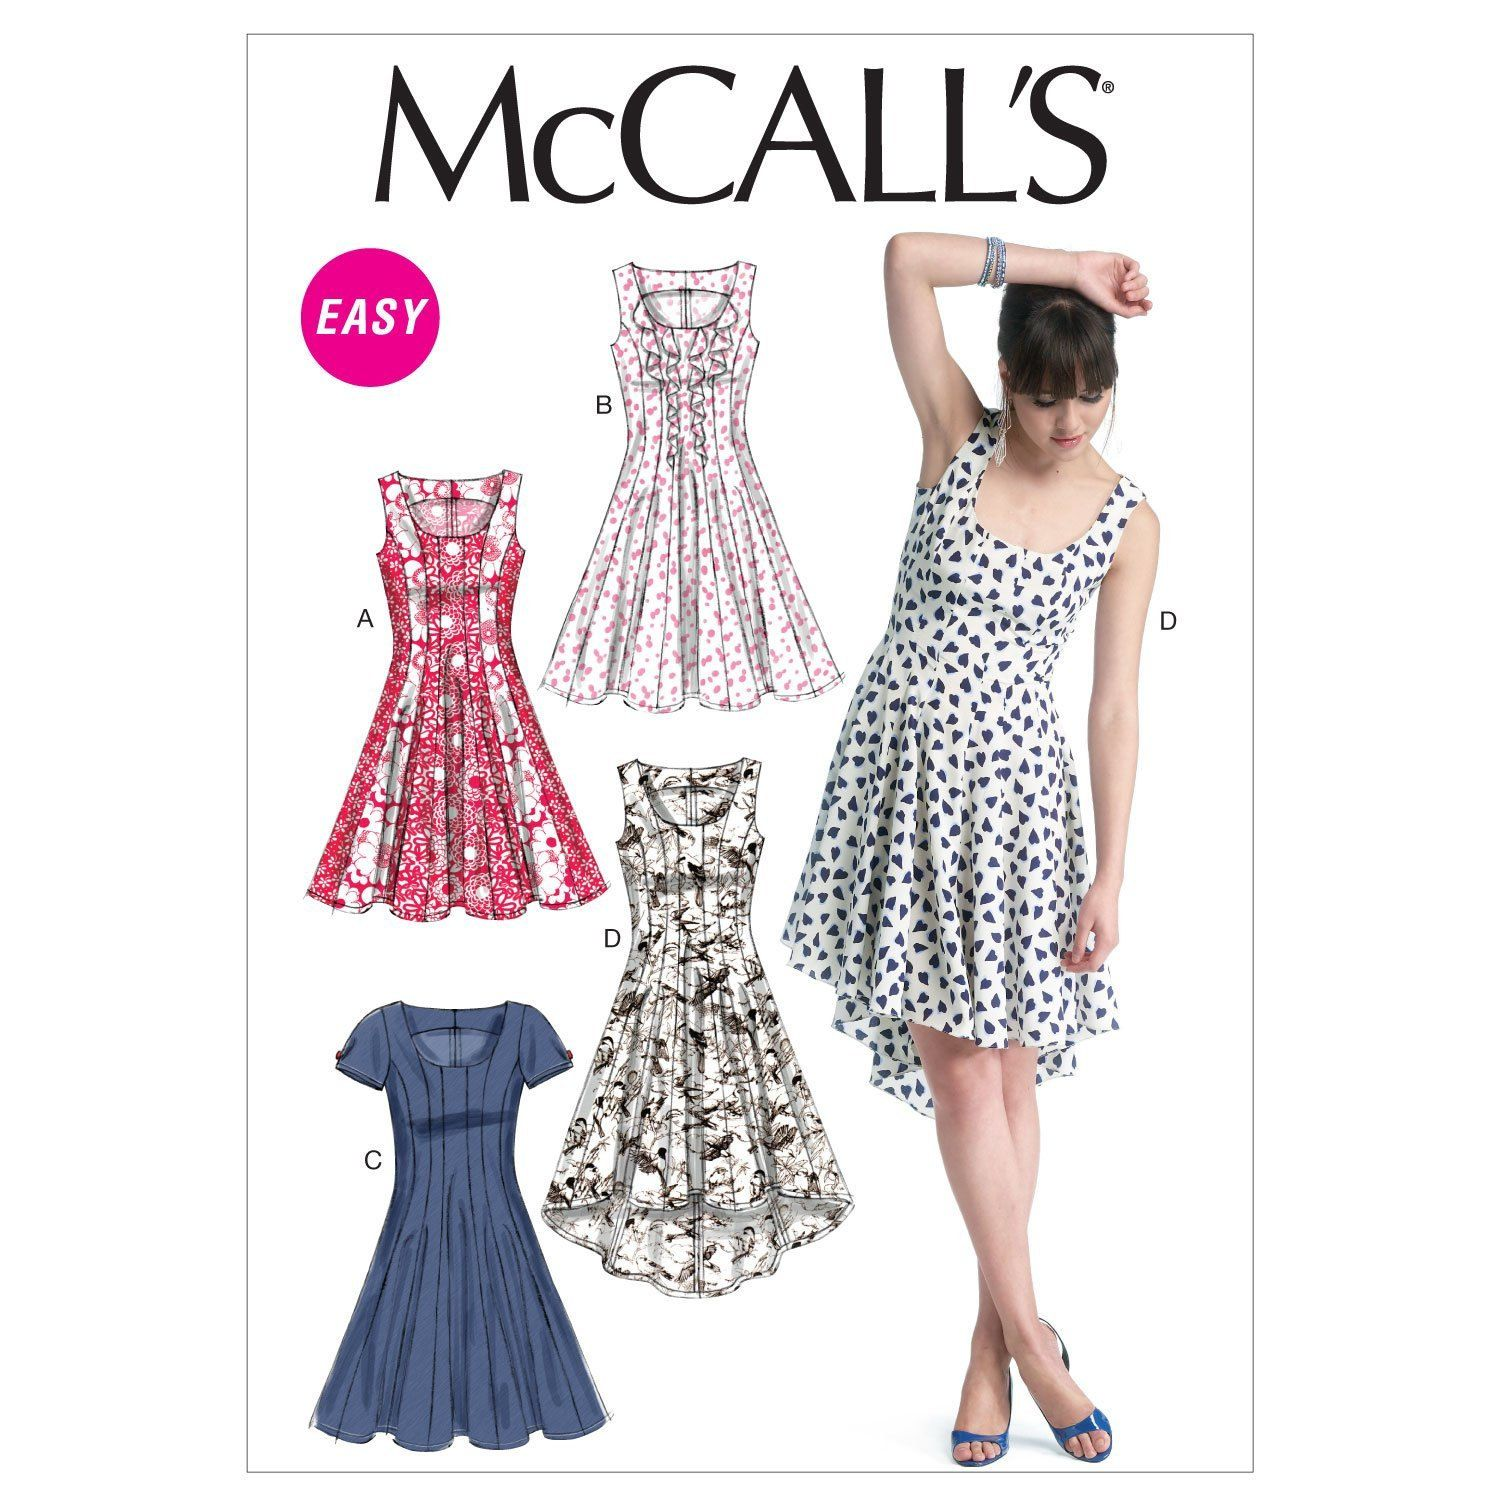 Mccalls pattern m6504 womens misses semifitted and